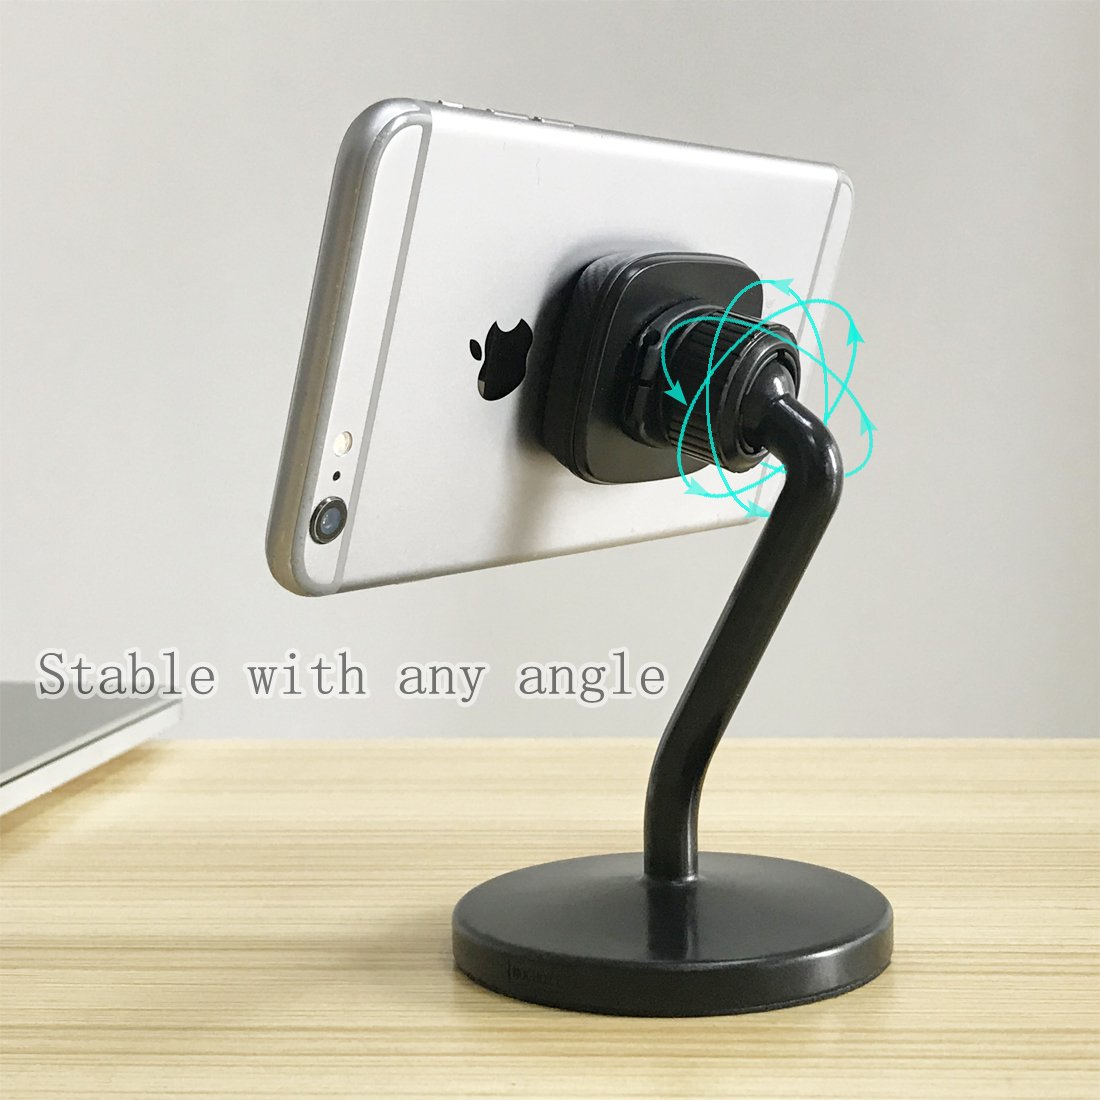 Magnetic Desk Stand Universal Smartphone Holder Mount for iPhone X XR 8 7 Plus Samsung BlackBerry Motorola LG Nexus and Other Smartphones Mini Tablets